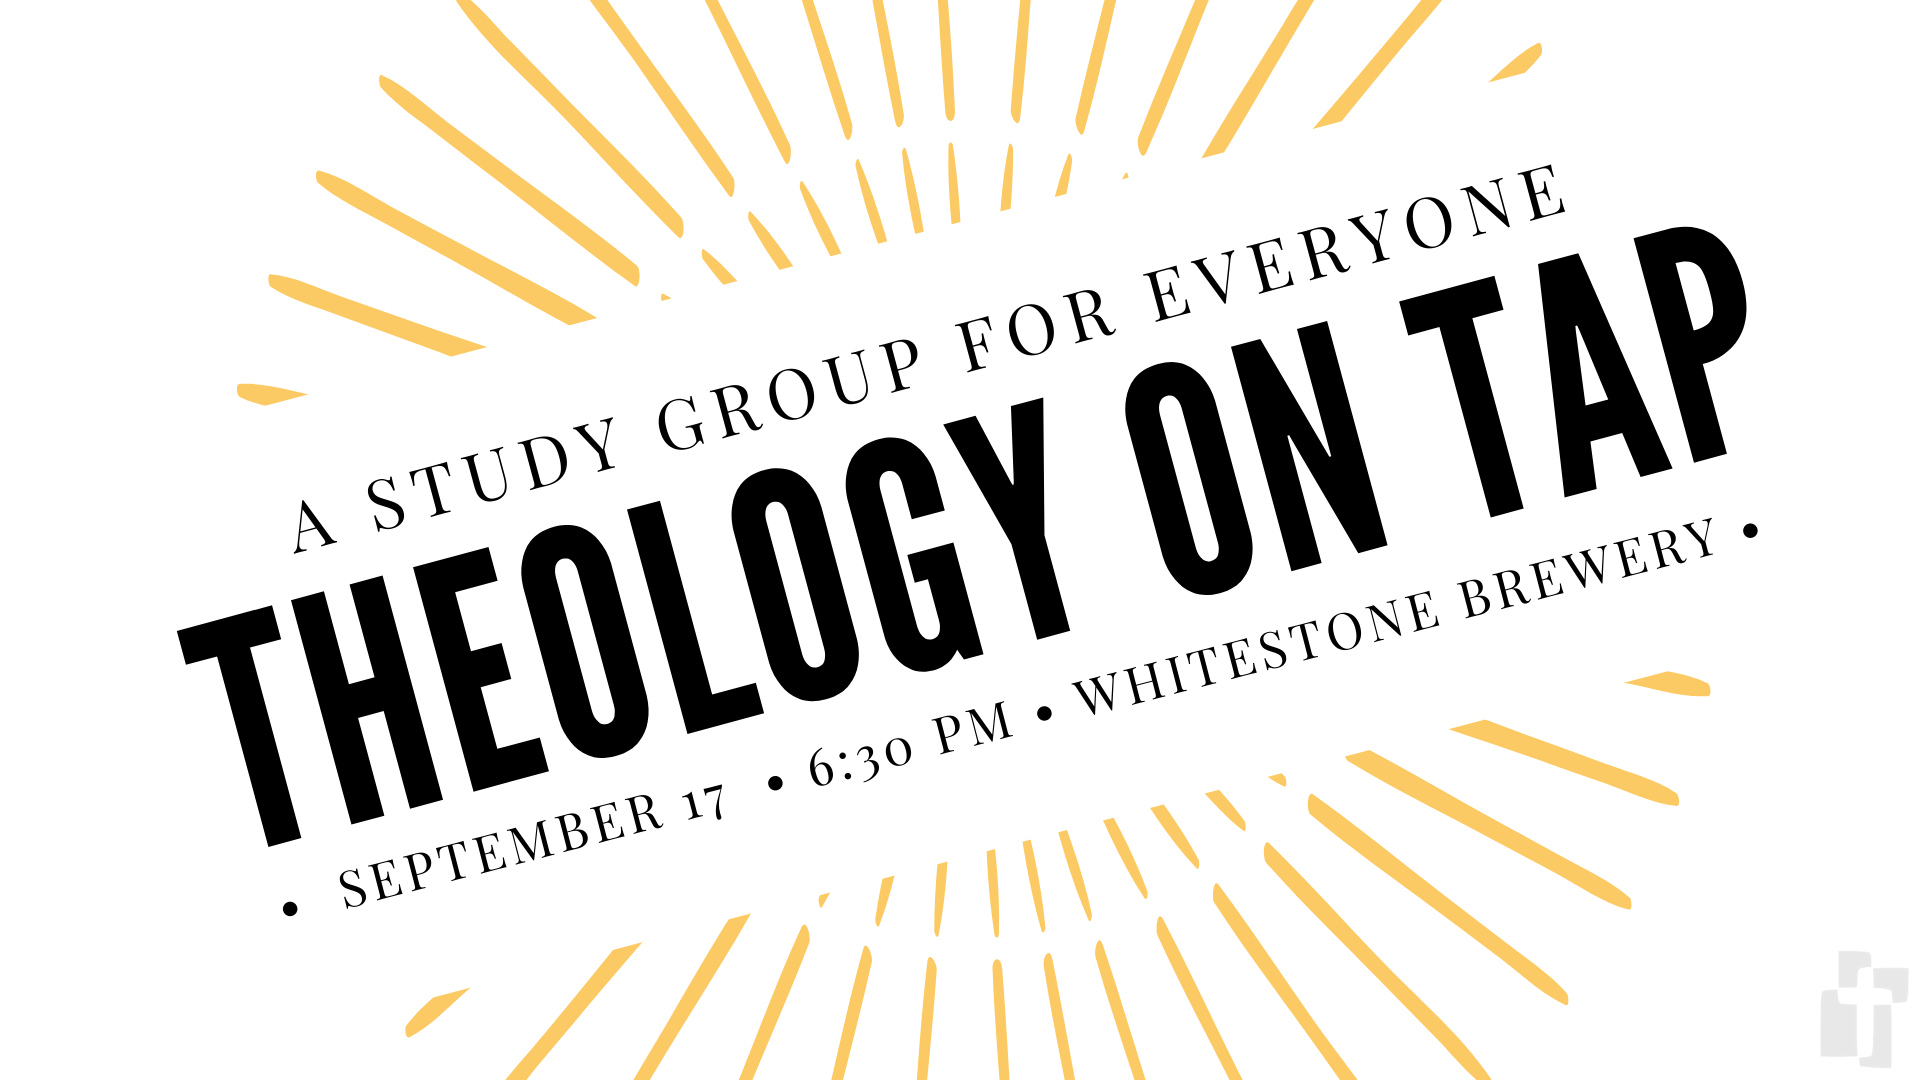 Theology on Tap: September 17 at 6:30 - Whitestone Brewery